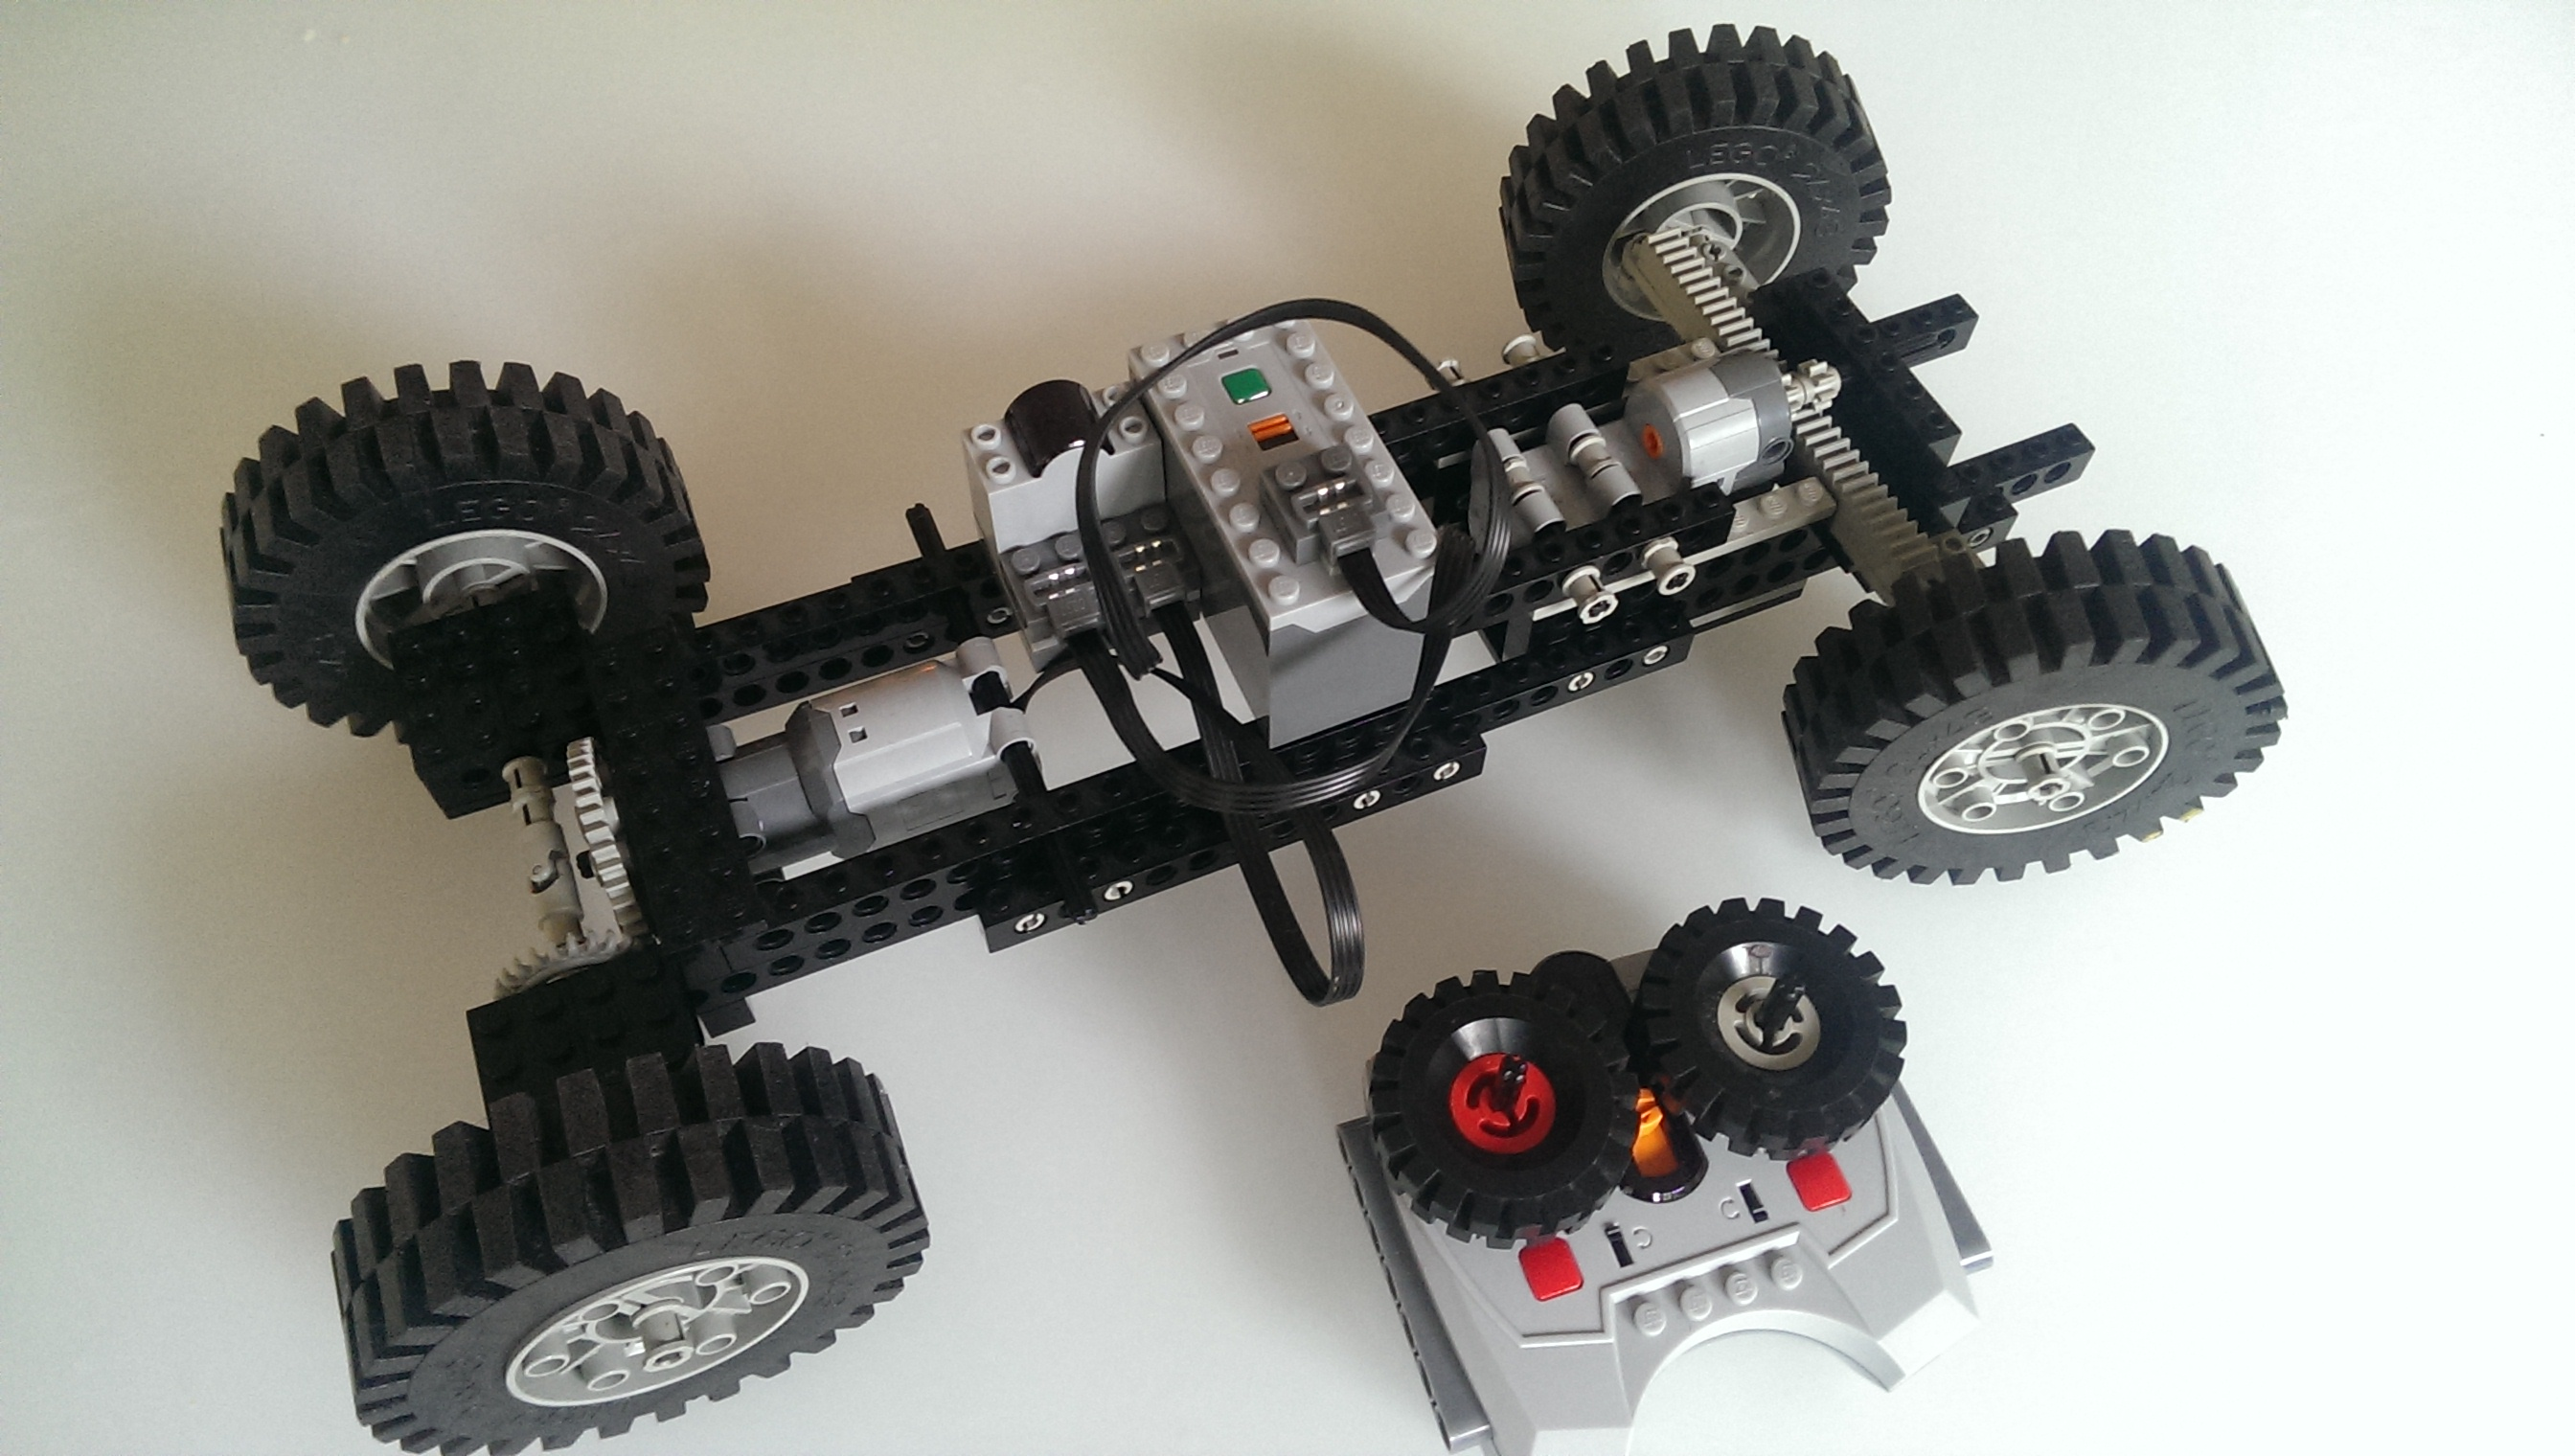 IR remote controlled lego car